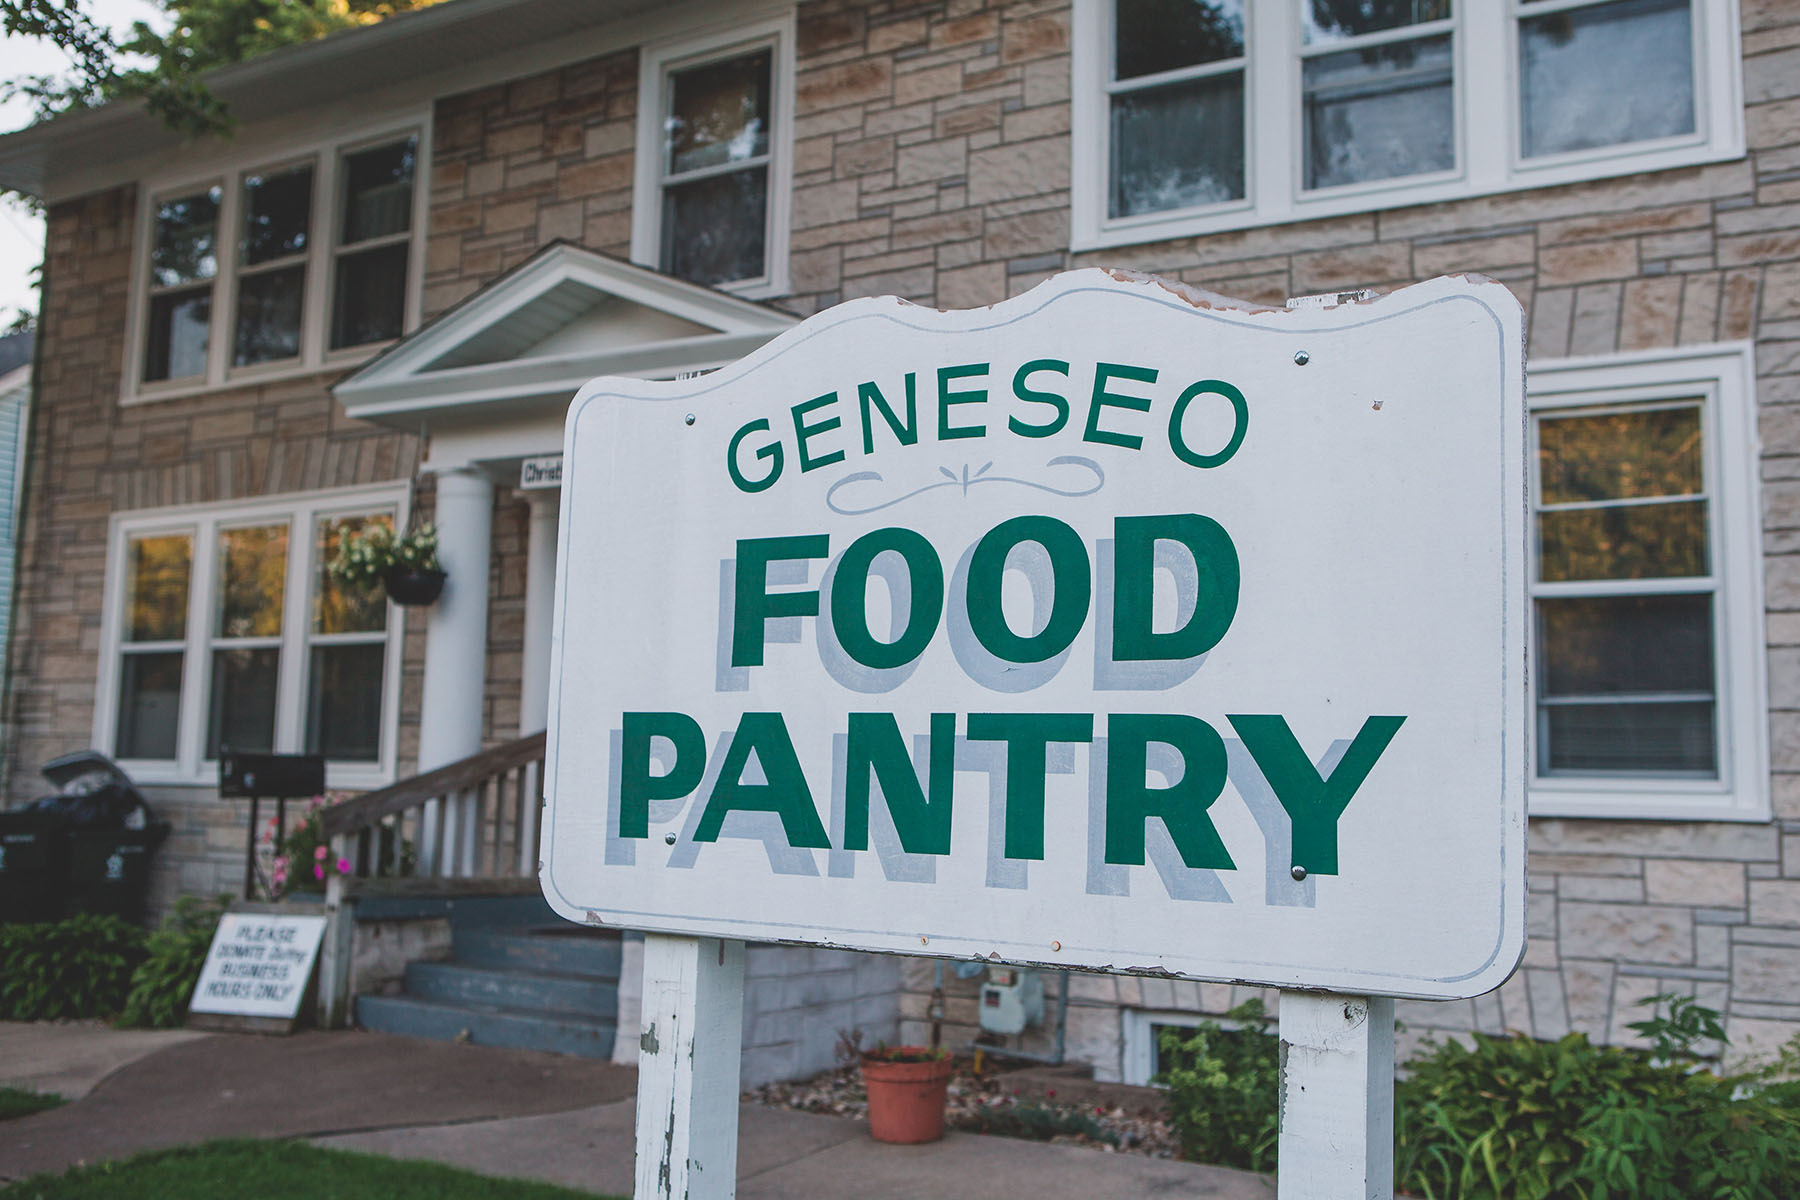 The Christian mission of the Geneseo Food Pantry is to provide food, clothing and short-term emergency assistance for families and individuals residing in the Geneseo area.